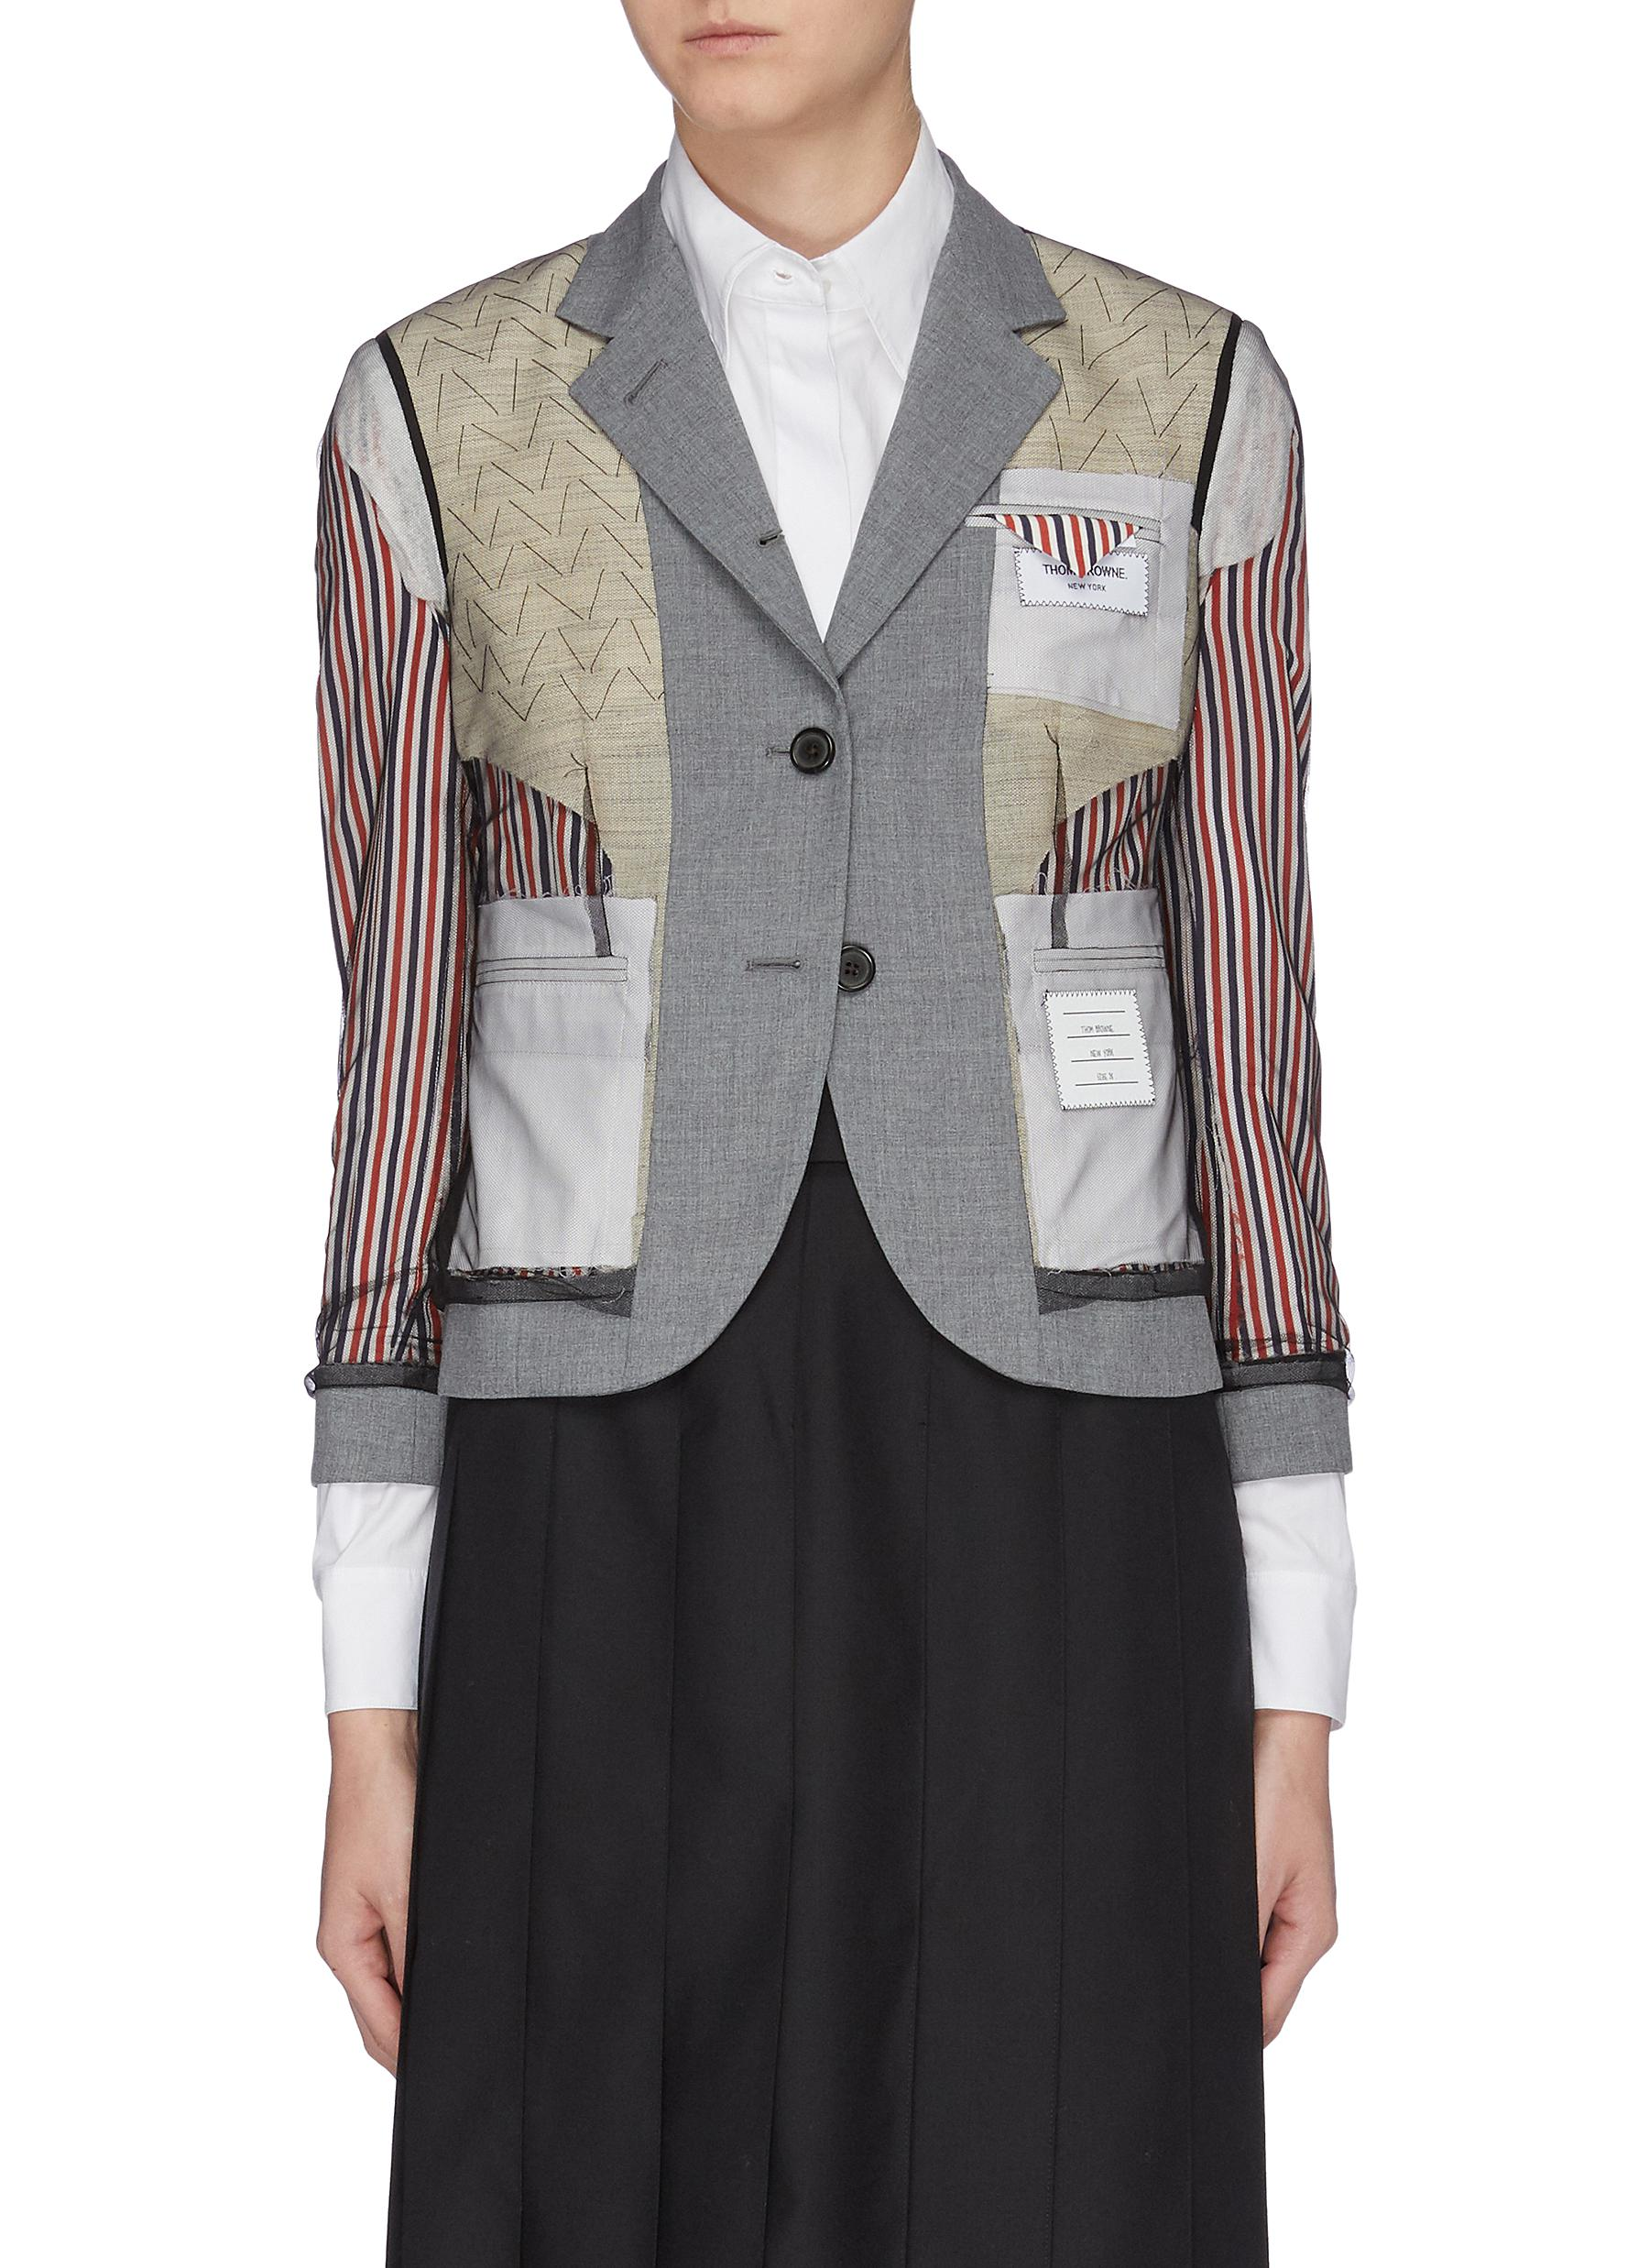 Patchwork inside-out mesh overlay blazer by Thom Browne